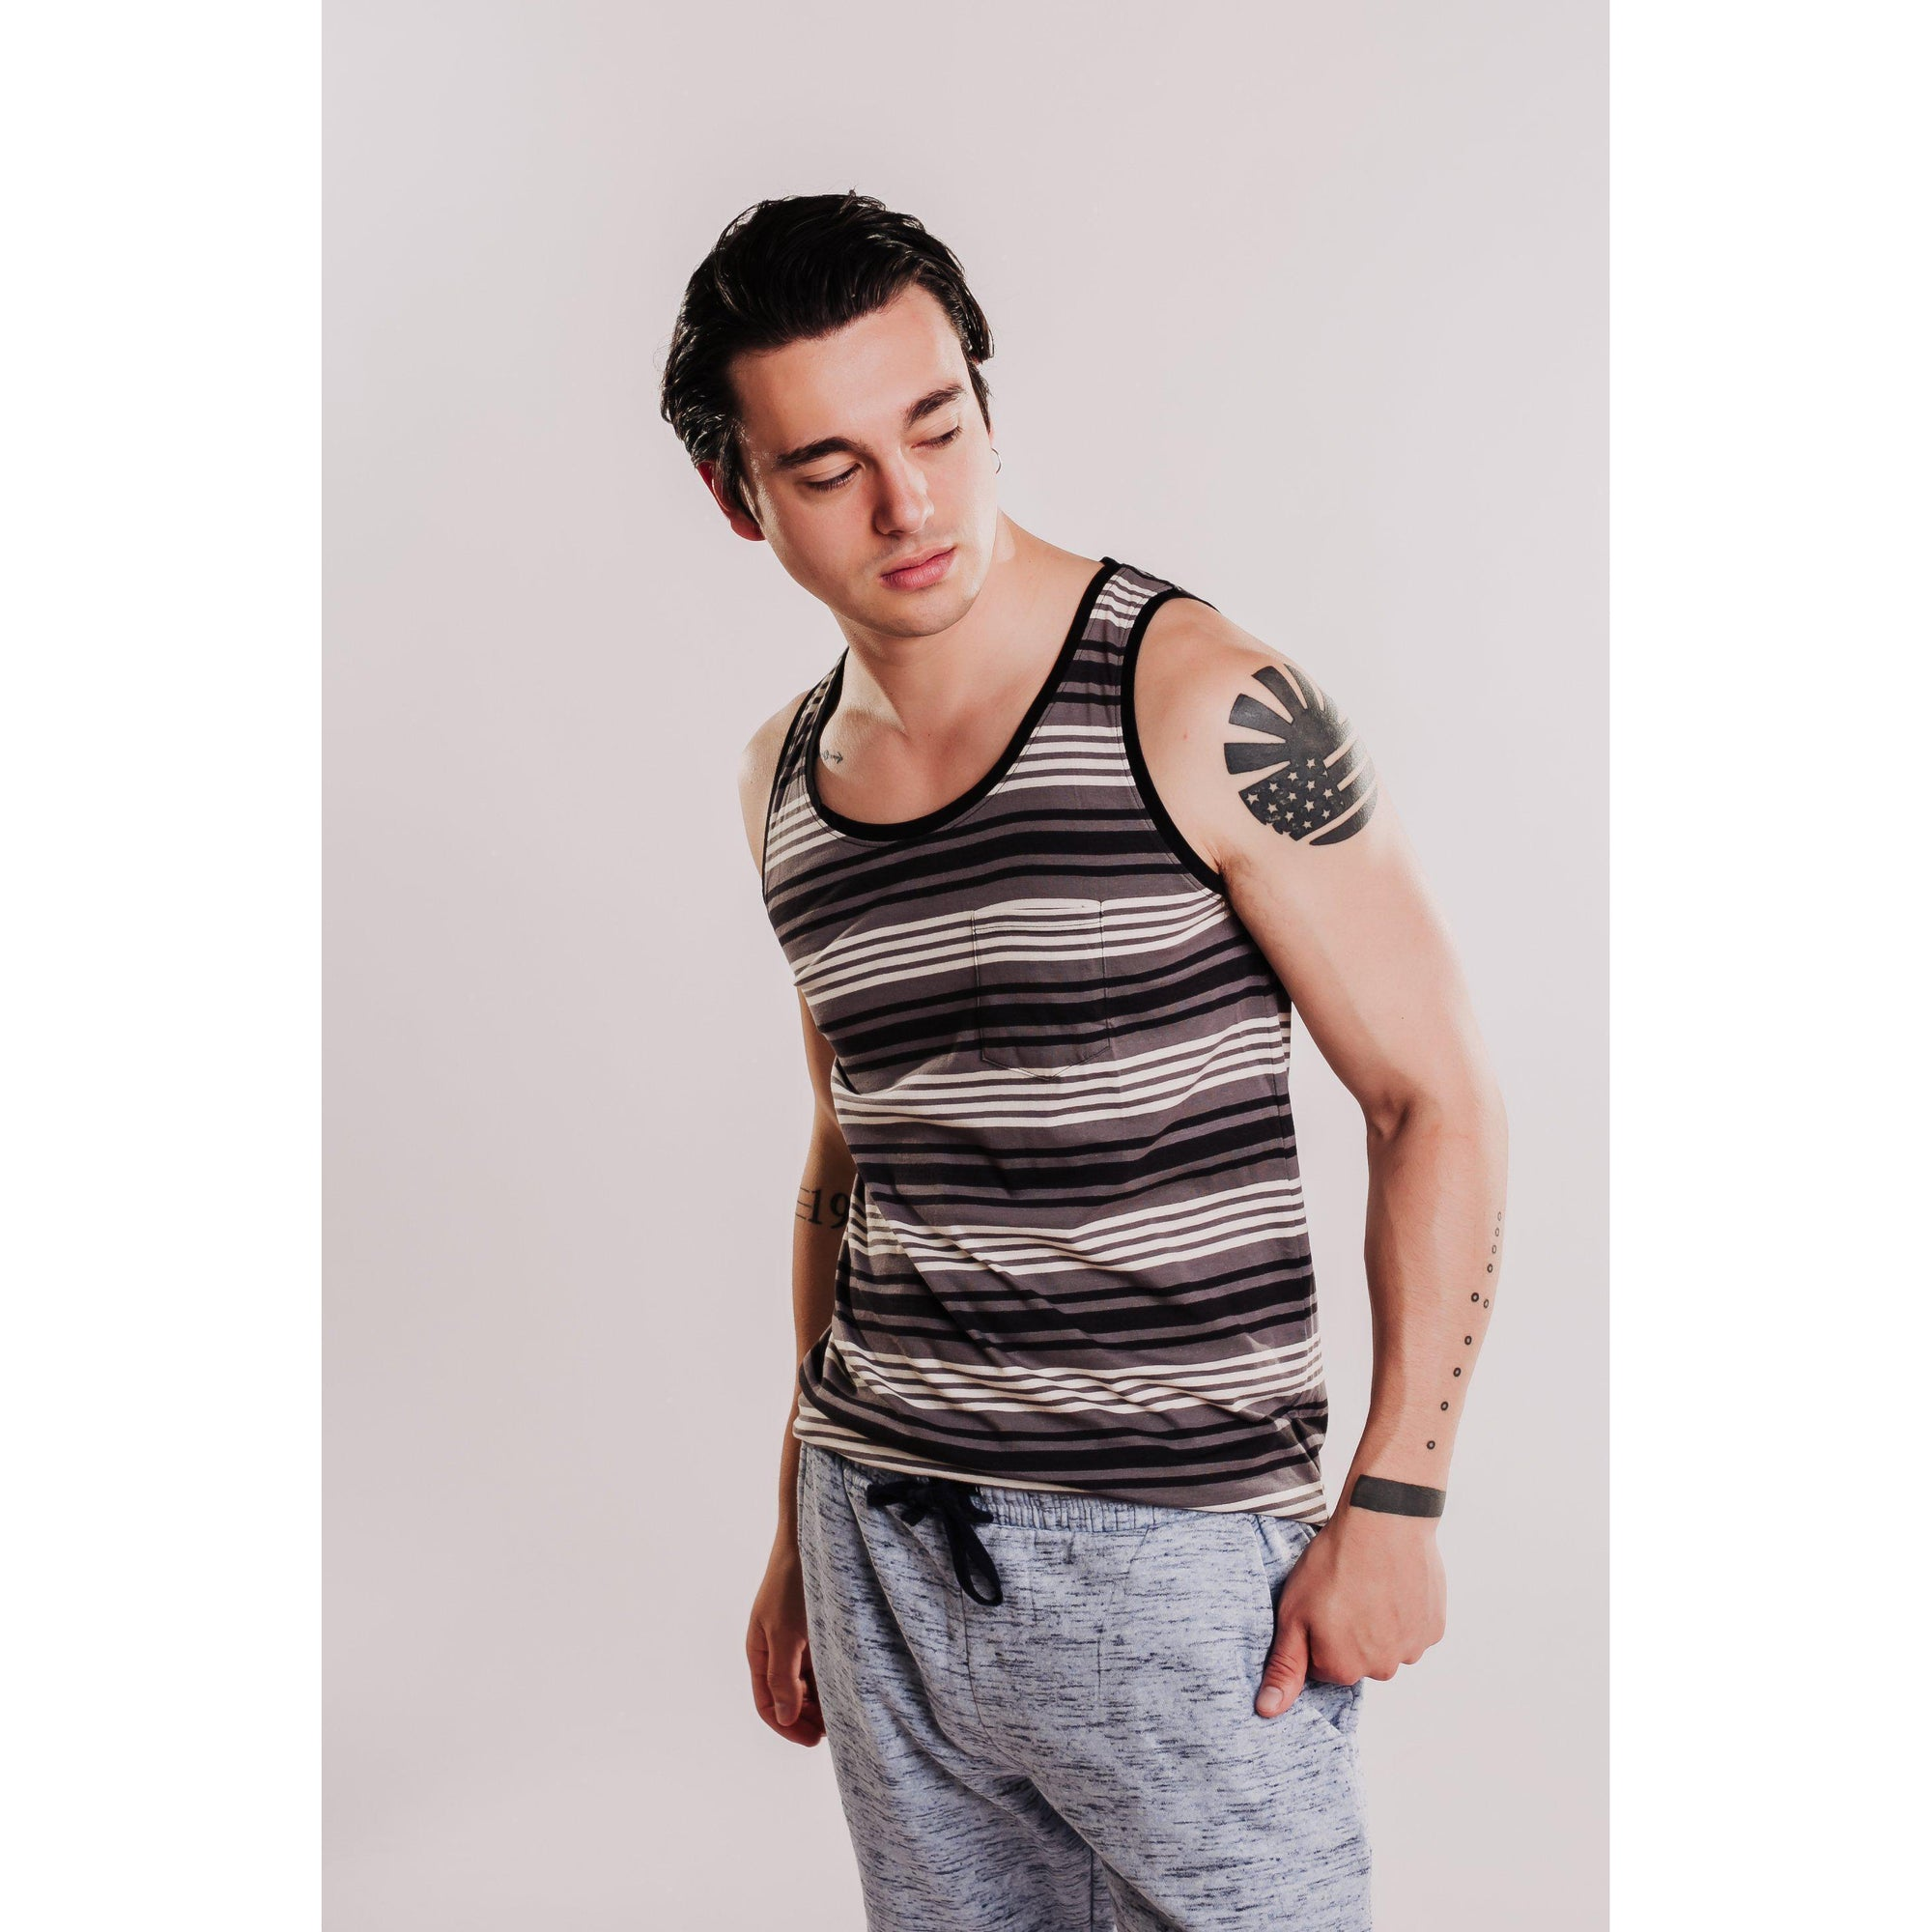 Mens Relaxed Fit Striped Tank - Charcoal-OneTrail Gear